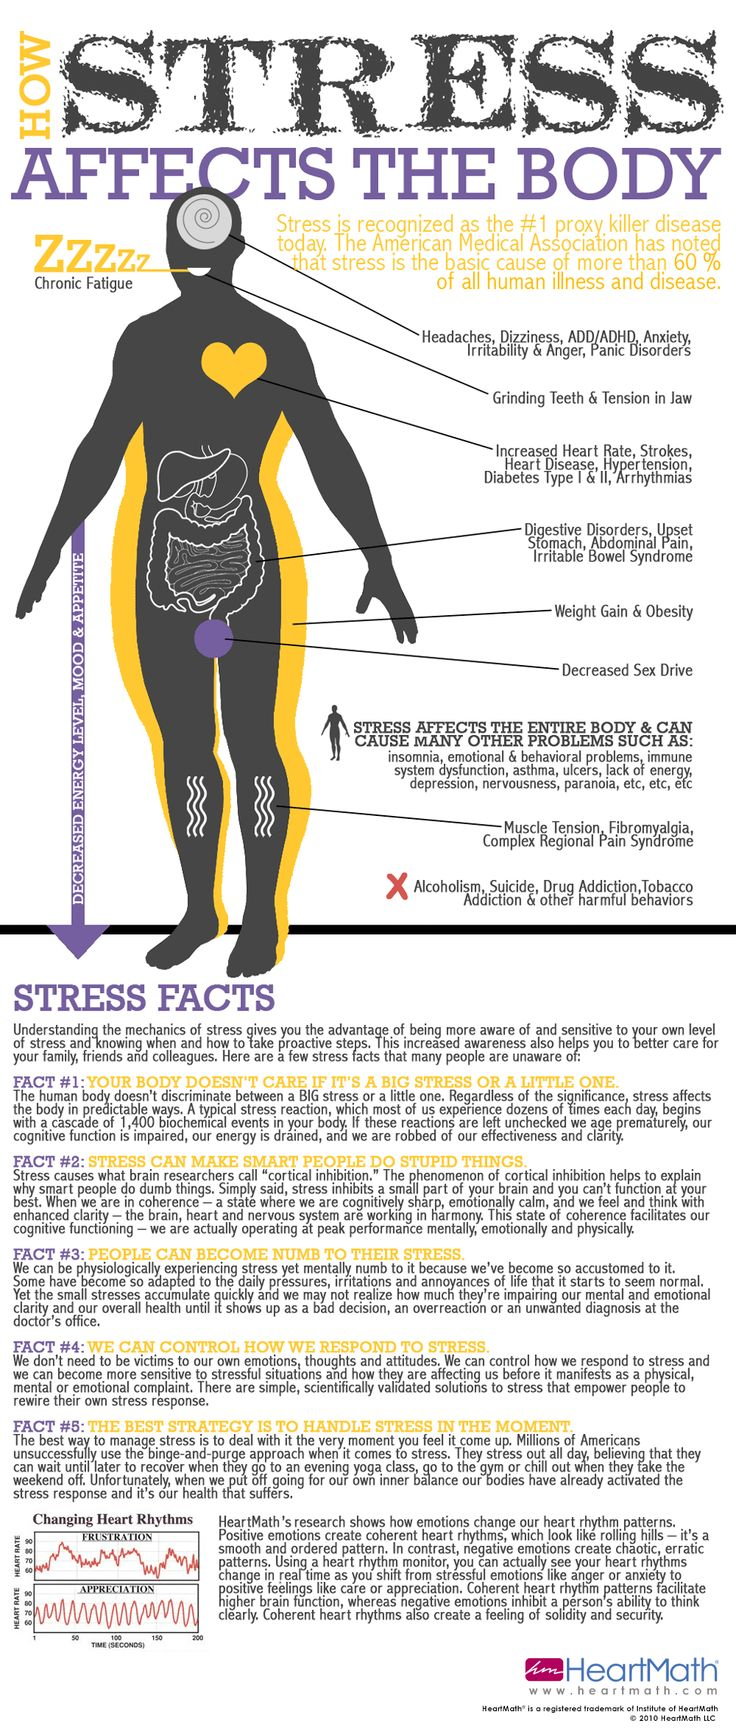 Stress is recognized as the #1 proxy killer disease in the world. The American Medical Association has noted that stress is the basic cause of more than 60% of all human illness and disease. Check out this infographic to learn more about stress so you can begin to cut it out of your life. #Fitness Matters